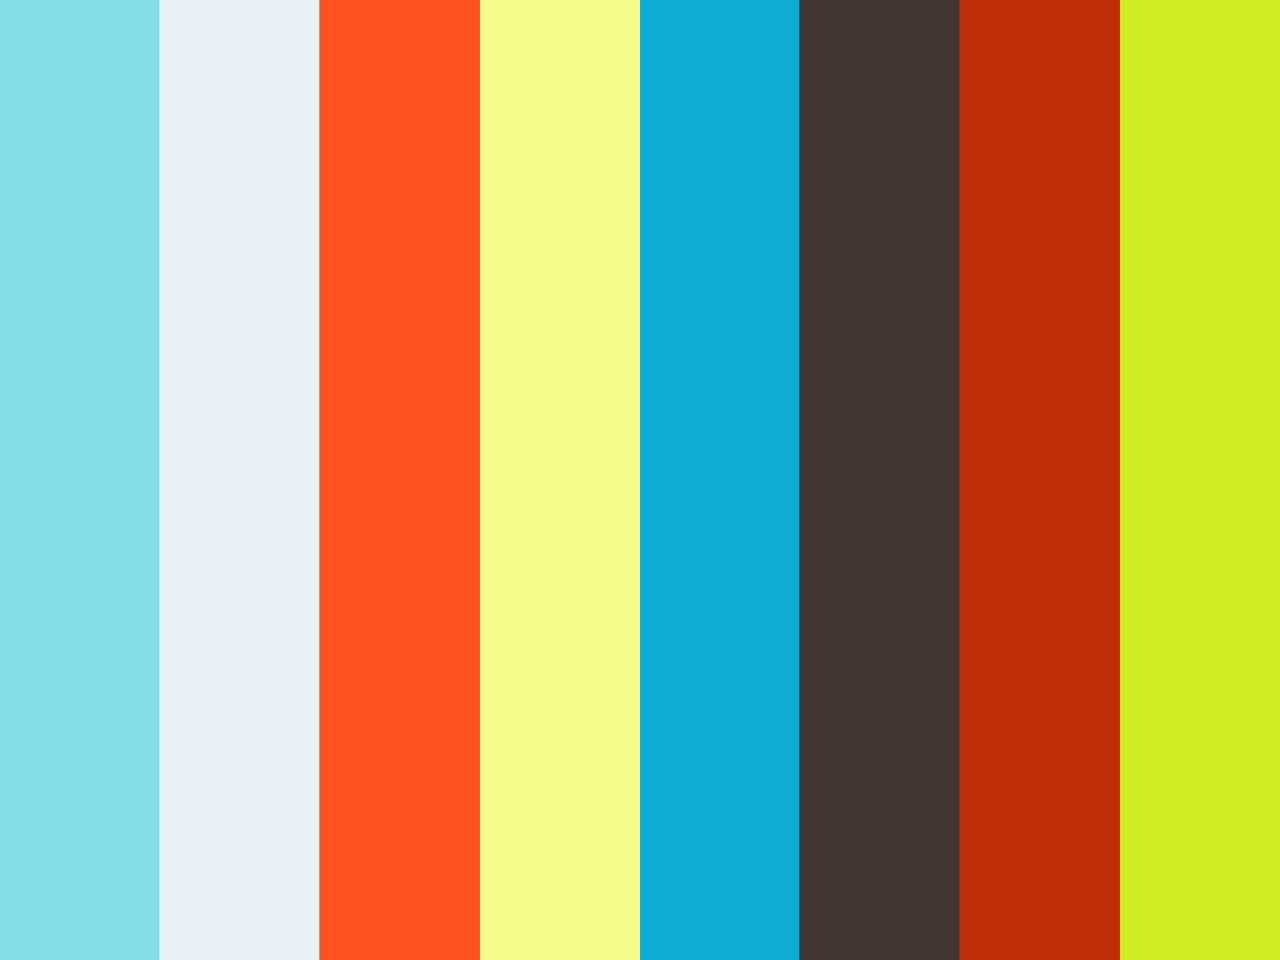 history of the telephone research paper View essay - hist 125 research paper from hist 125 at md university college the history of telephone april 21, 2016 hist 125 7983 what is a technology that we could not do with out today the.